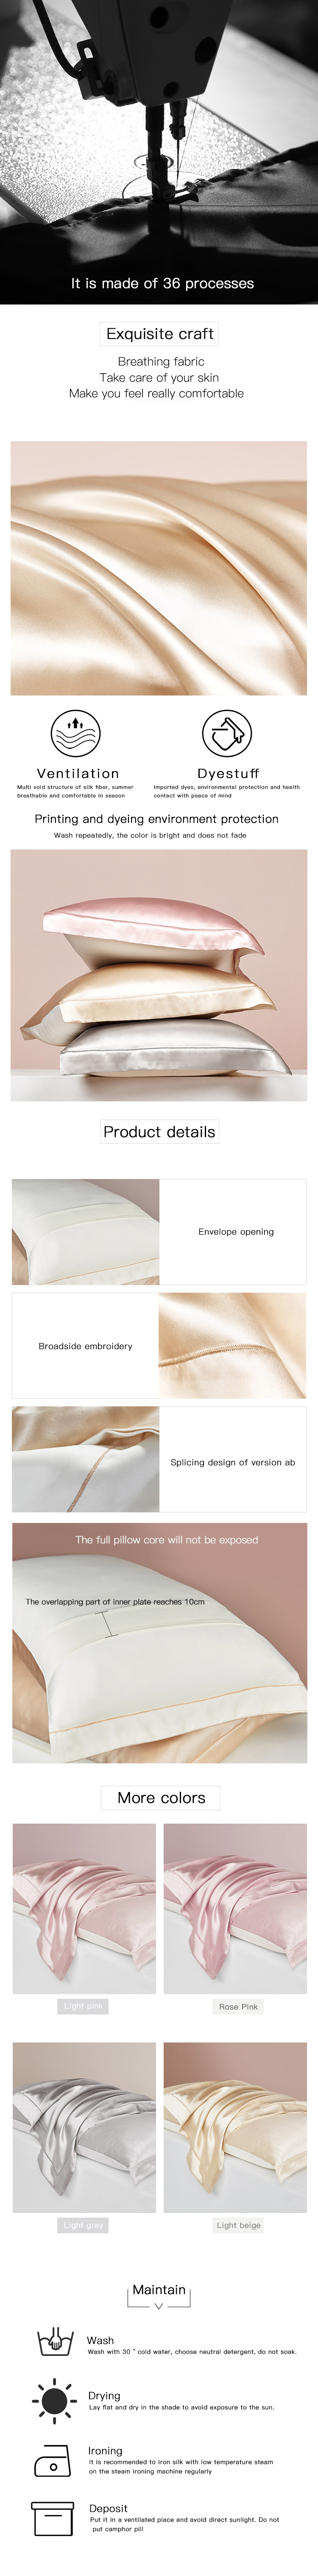 custom logo 100% Mulberry Silk Pillowcase for Hair and Skin Health, with Piping, Envelope Closure